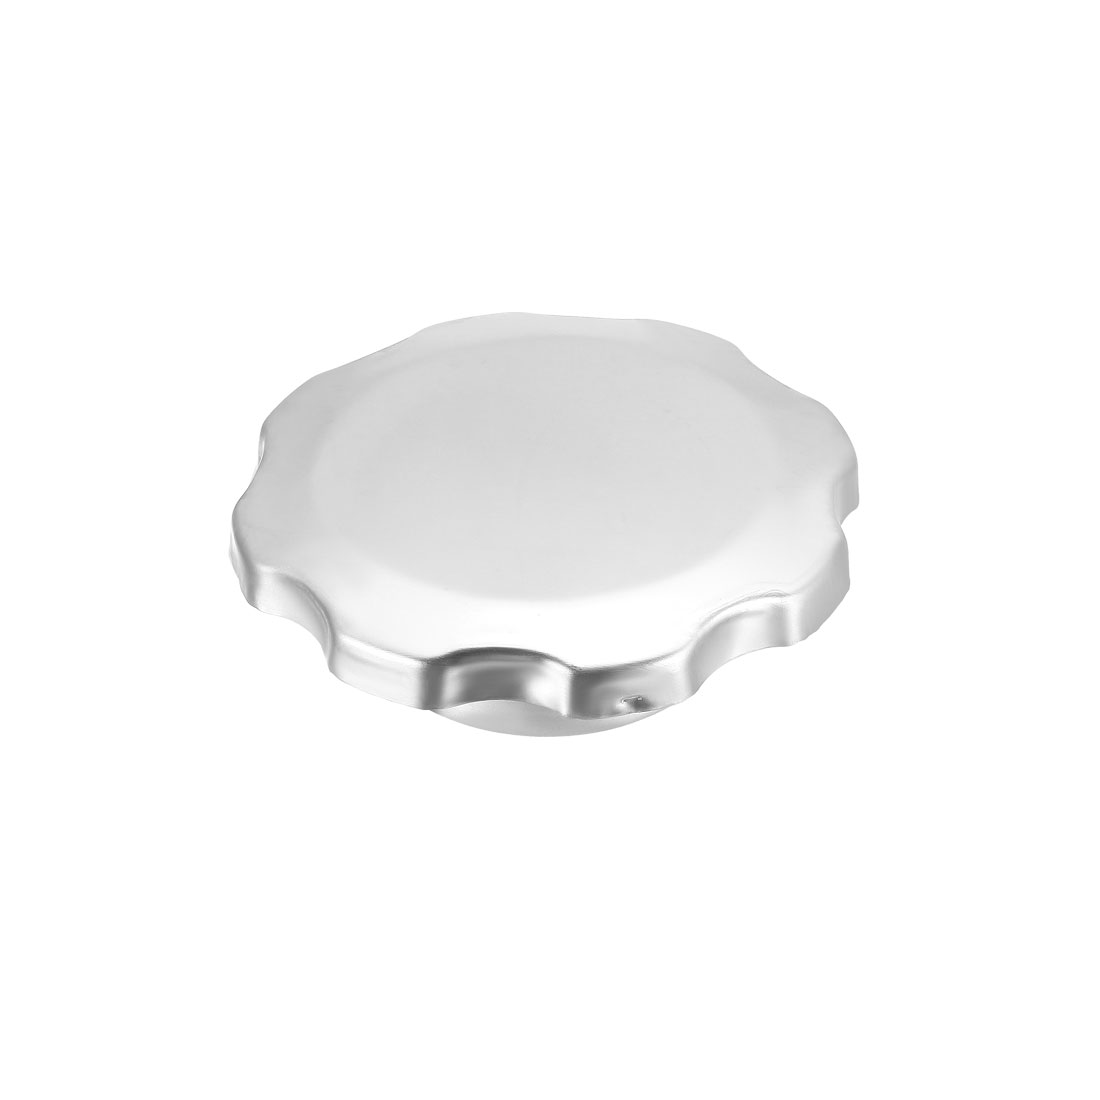 Replace Gas Fuel Cap for GX120 for GX160 for GX200 for GX340 for GX390